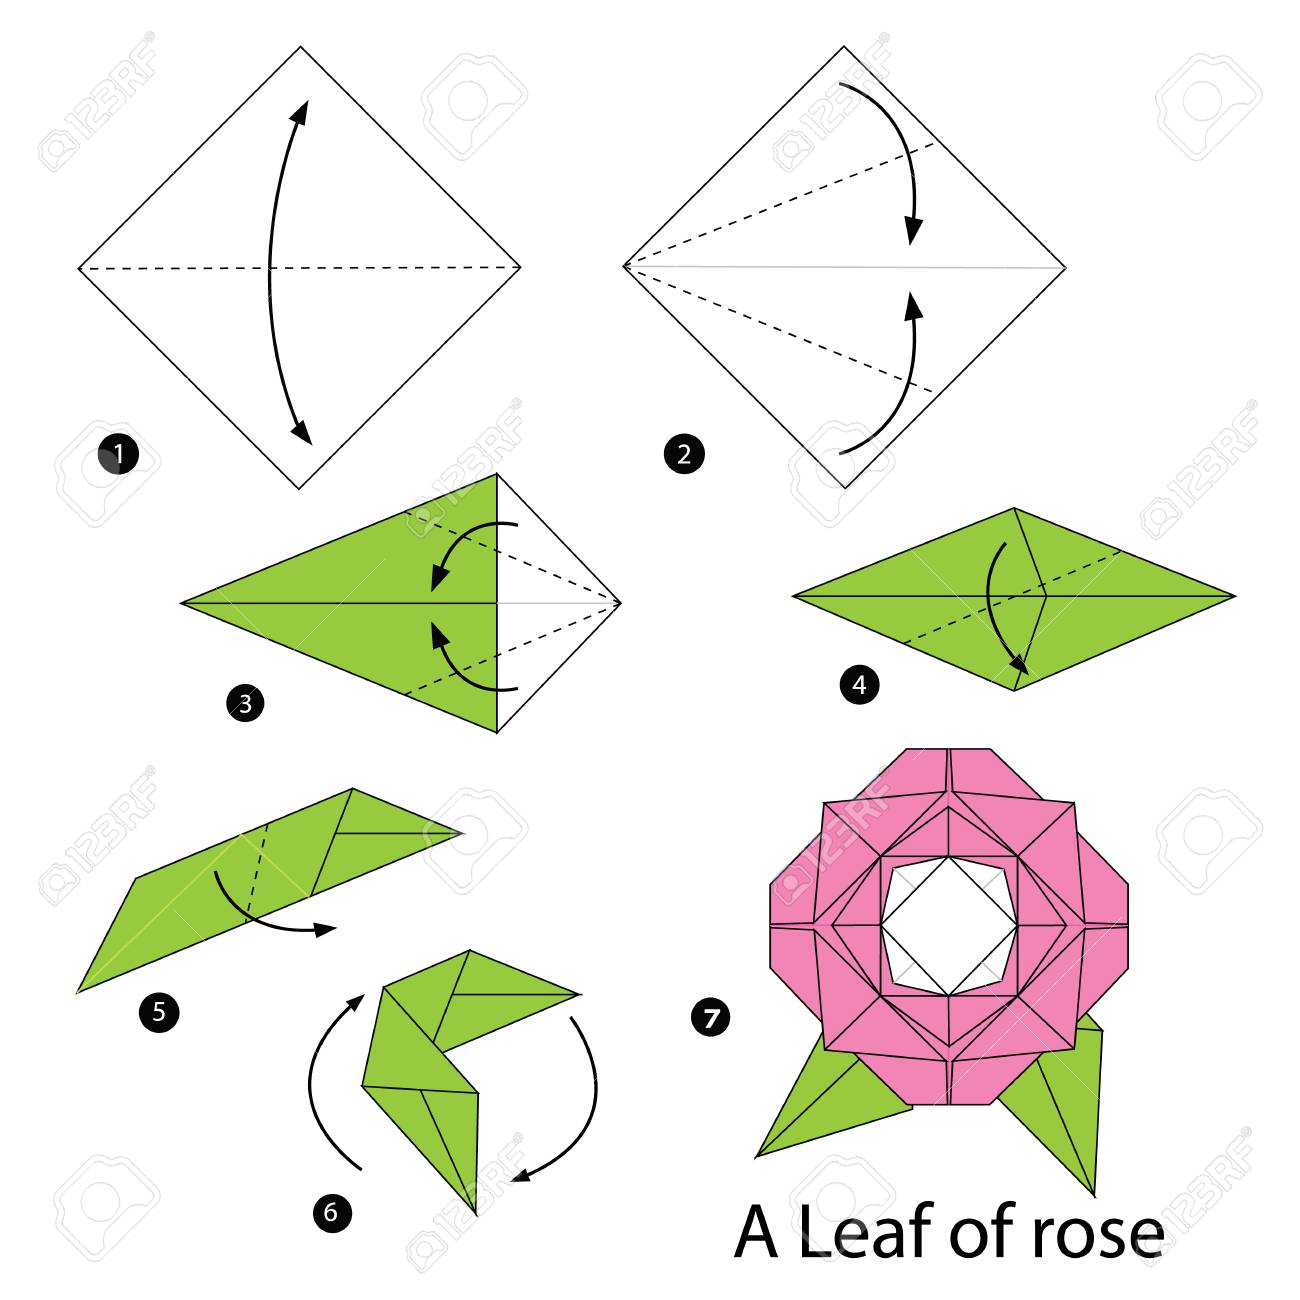 hight resolution of step by step instructions how to make origami a leaf of rose stock vector